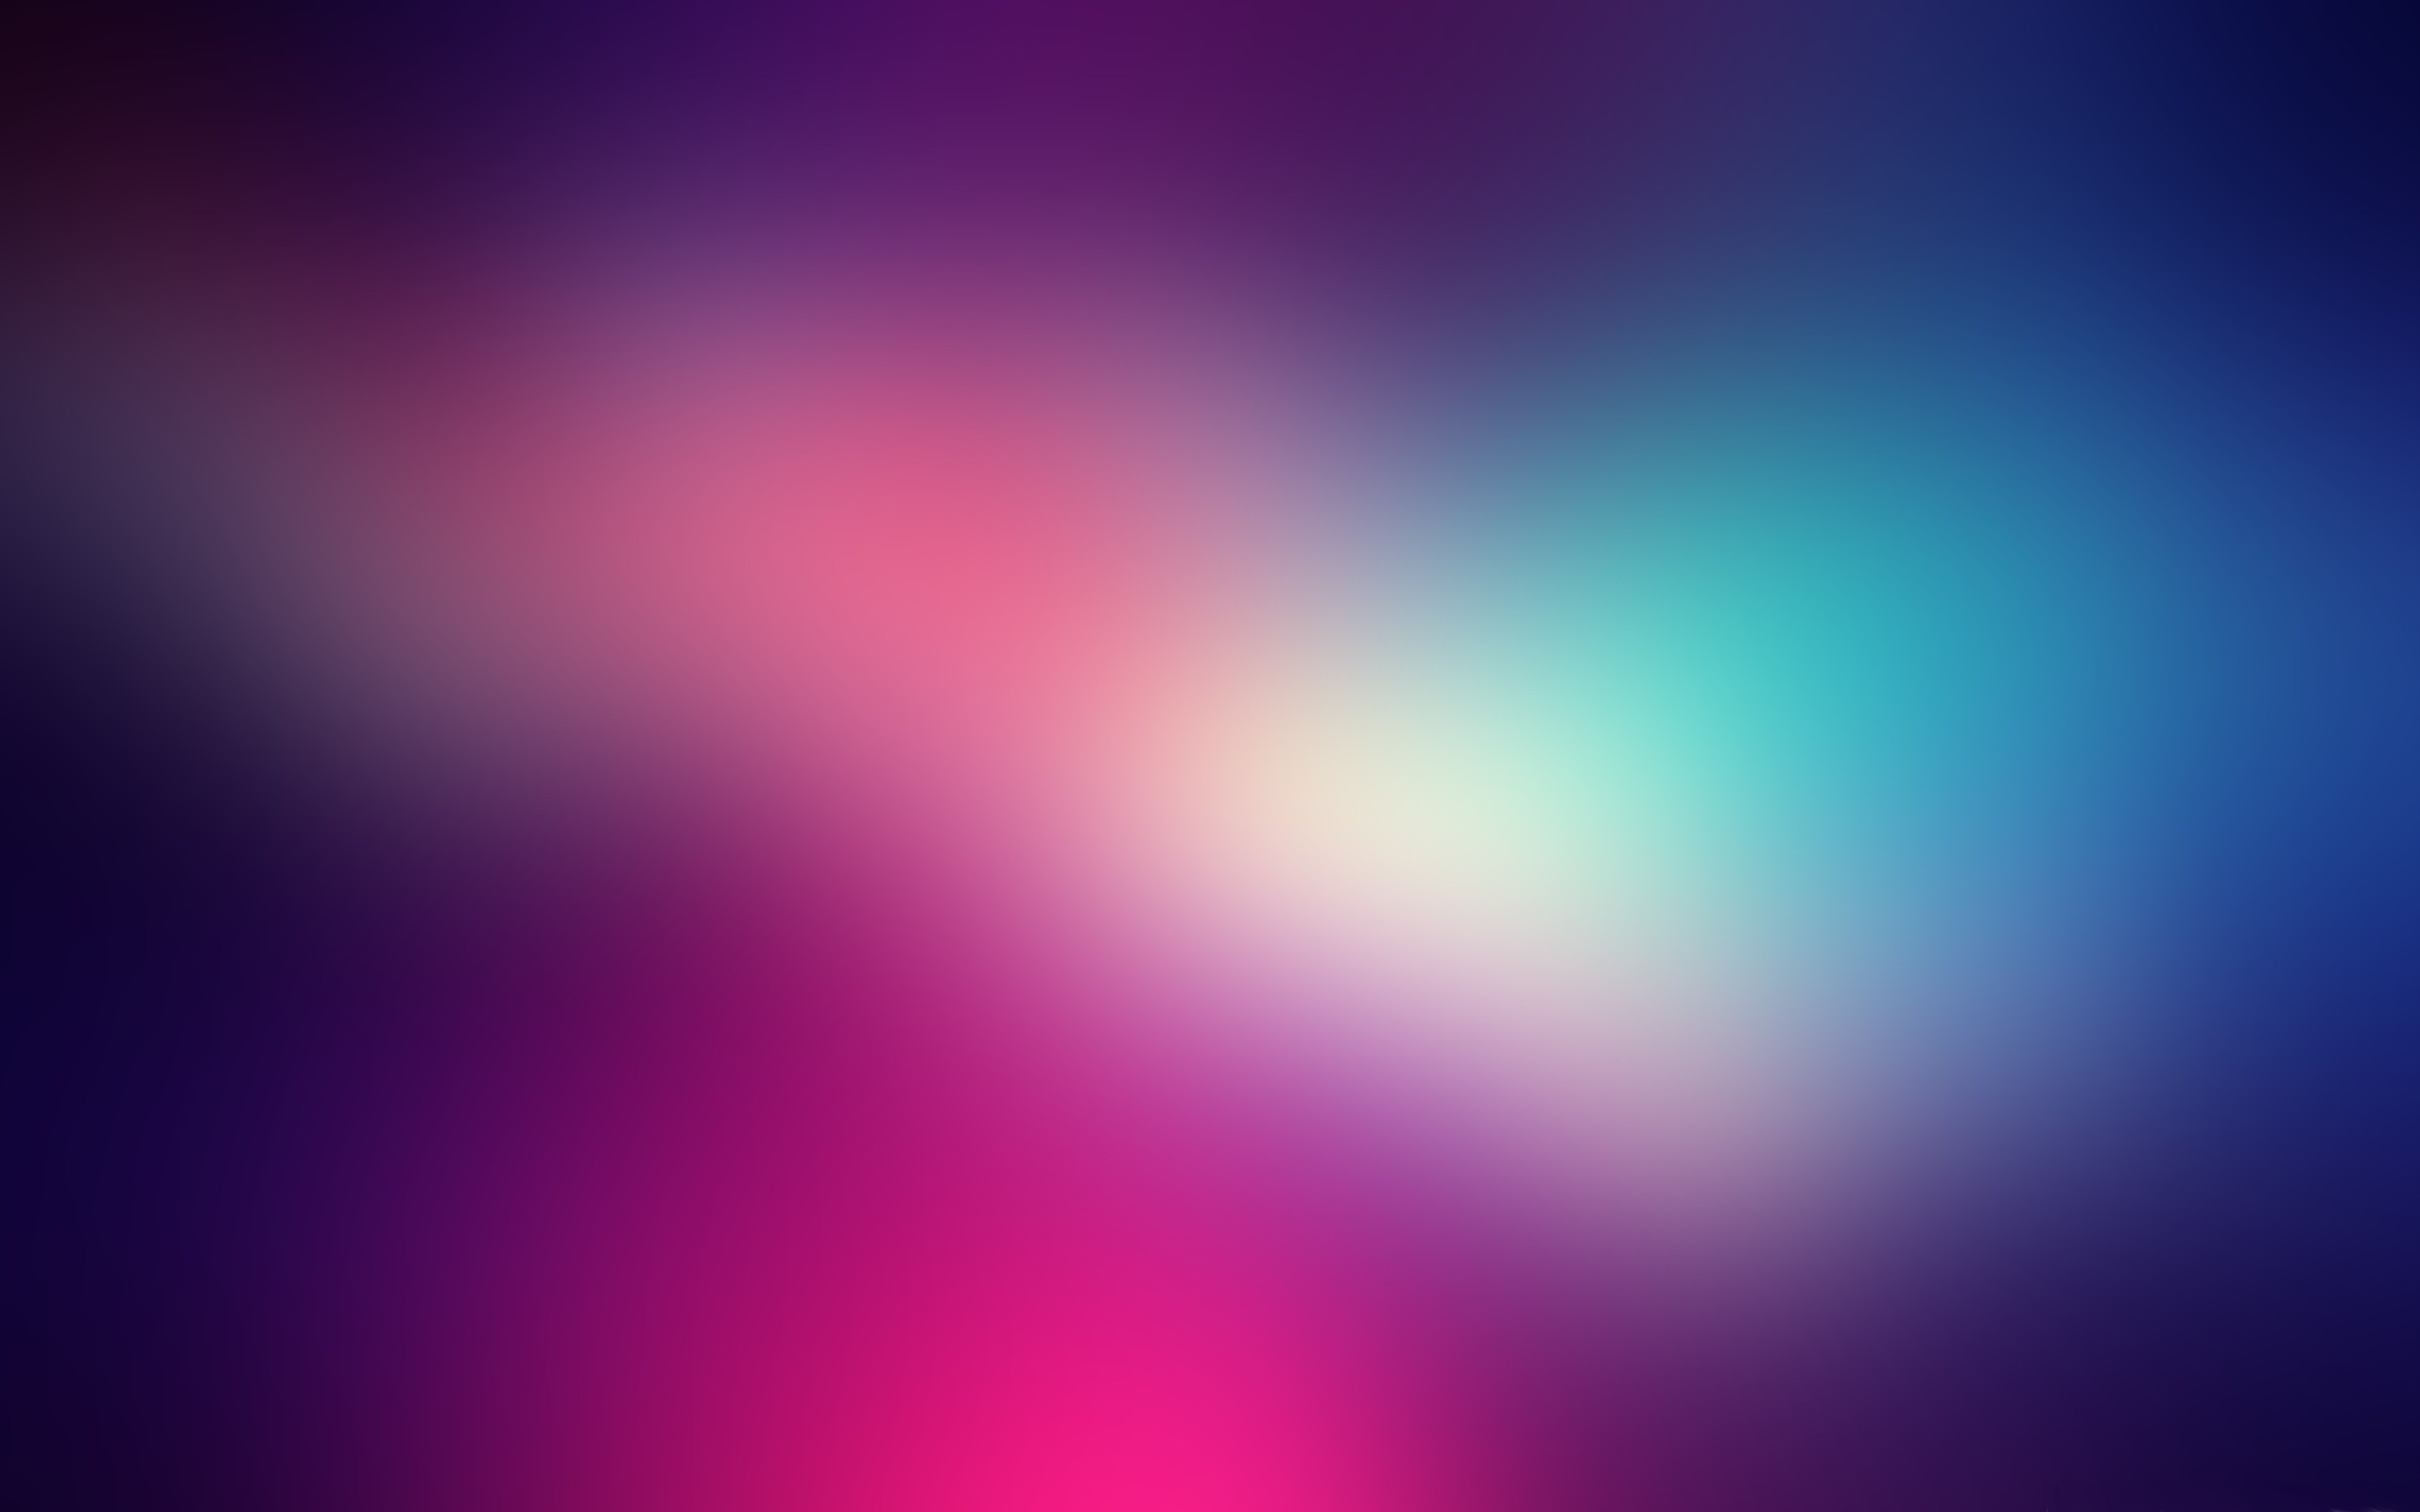 IOS Purple Wallpaper